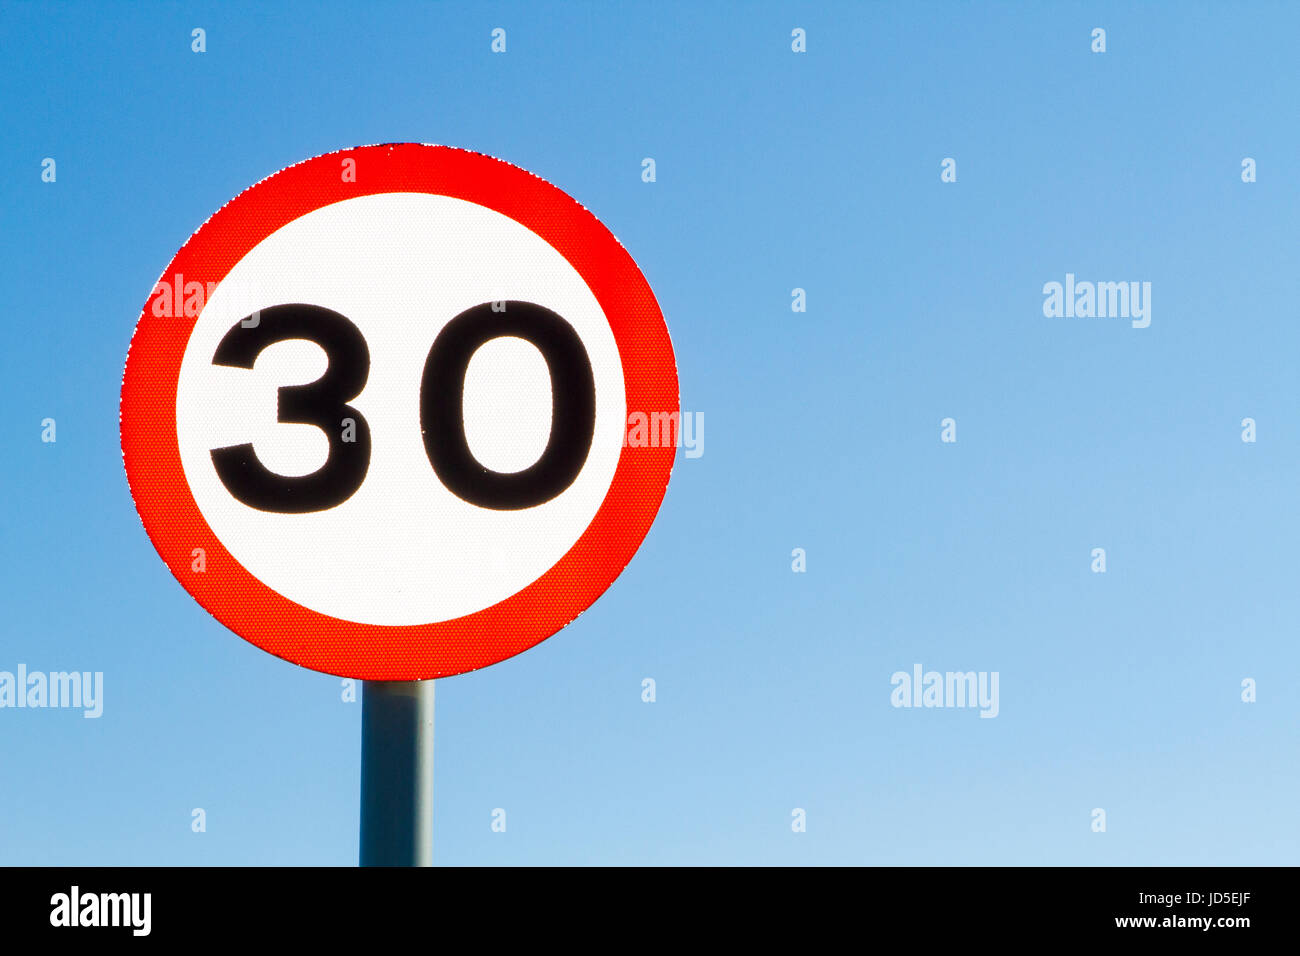 Left sided thirty miles per hour speed limit sign against blue sky with copyspace - Stock Image